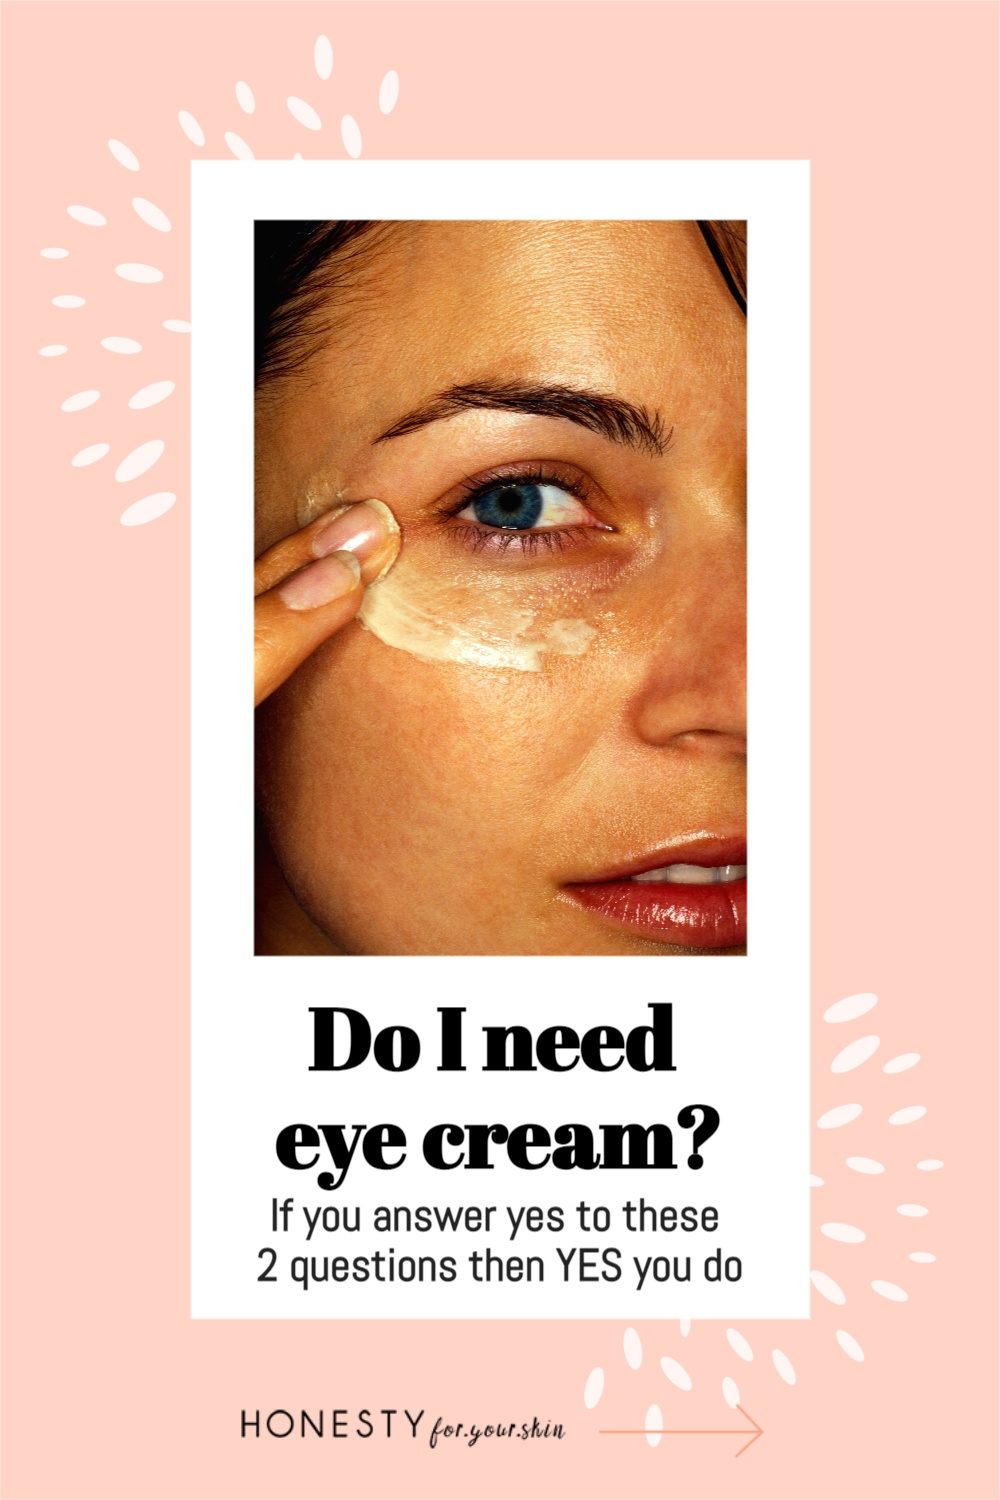 Are eye creams a gimmick? Is it worth getting eye cream? Do you need eye cream? You must answer these 2 questions to find out.